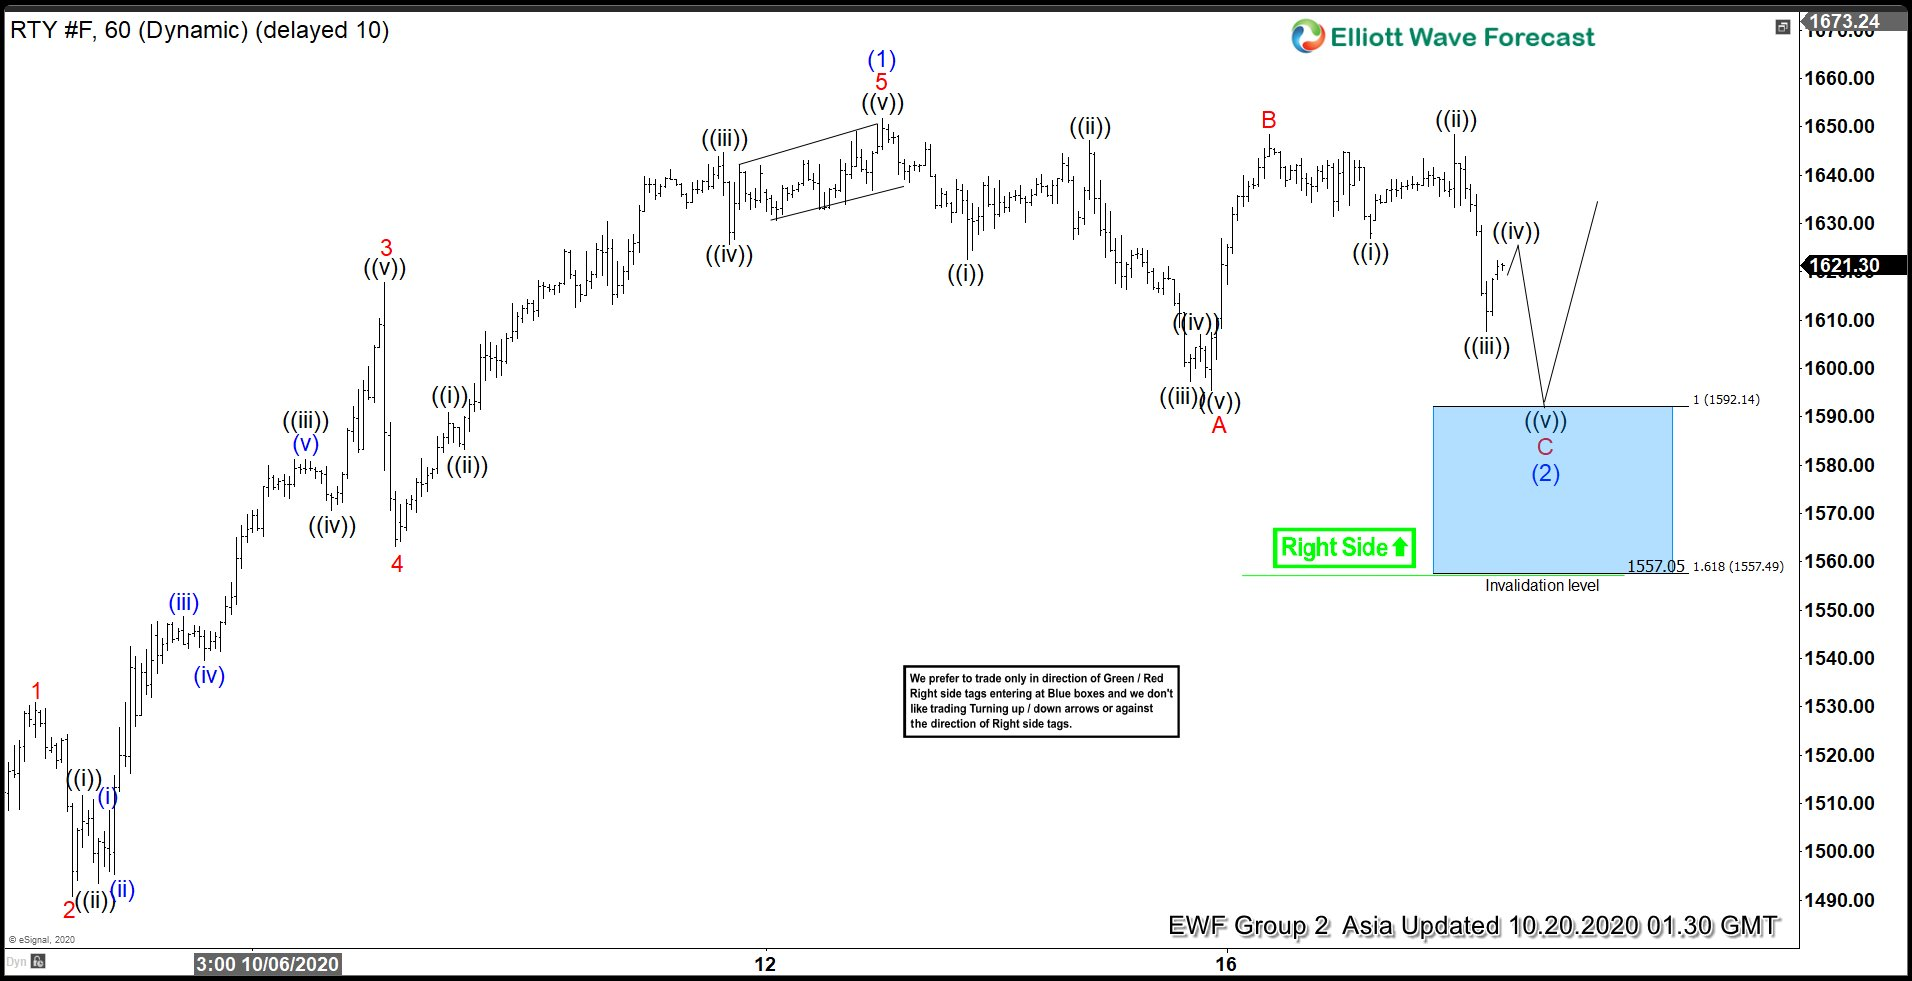 Elliott Wave View: Near Term Support for Russell 2000 Futures (RTY)